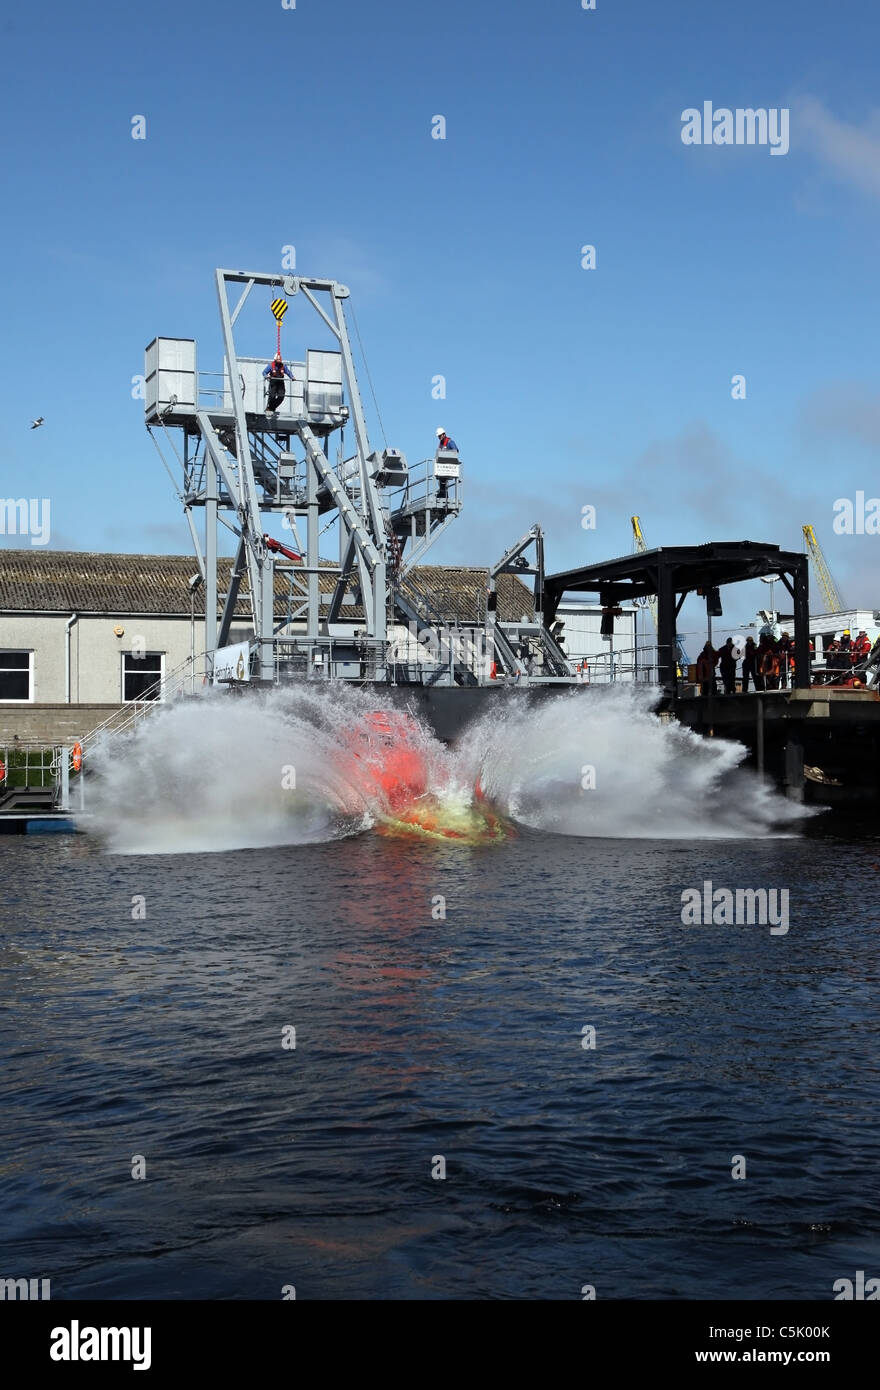 Sequence (see other images) of a free fall lifeboat trainer being dropped into the water. - Stock Image